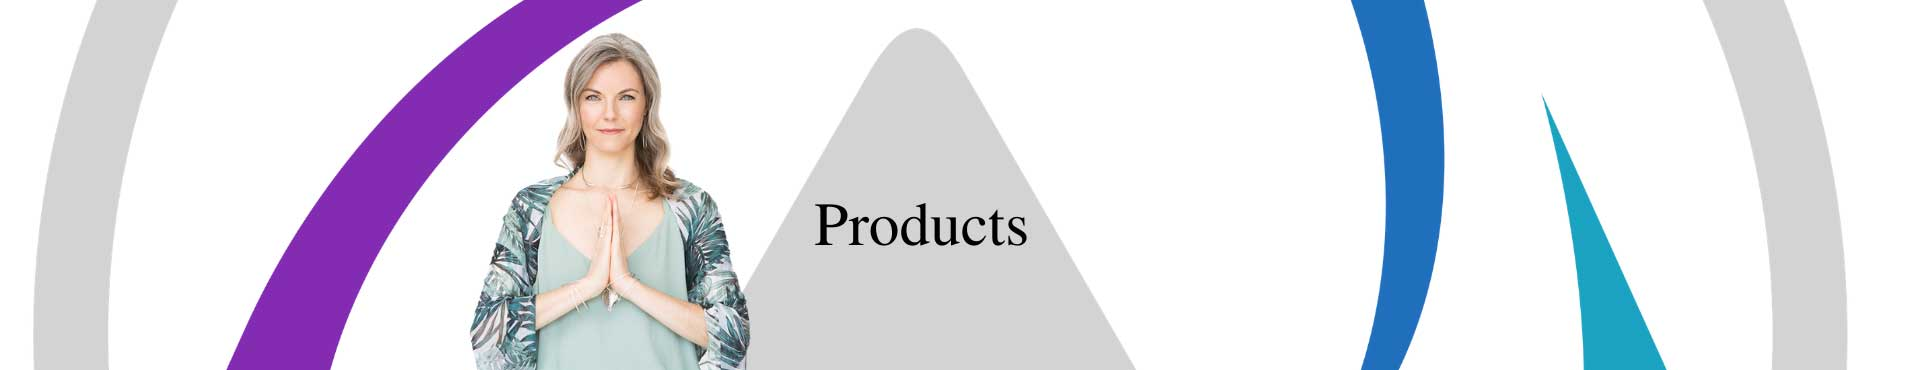 product-page-new-header